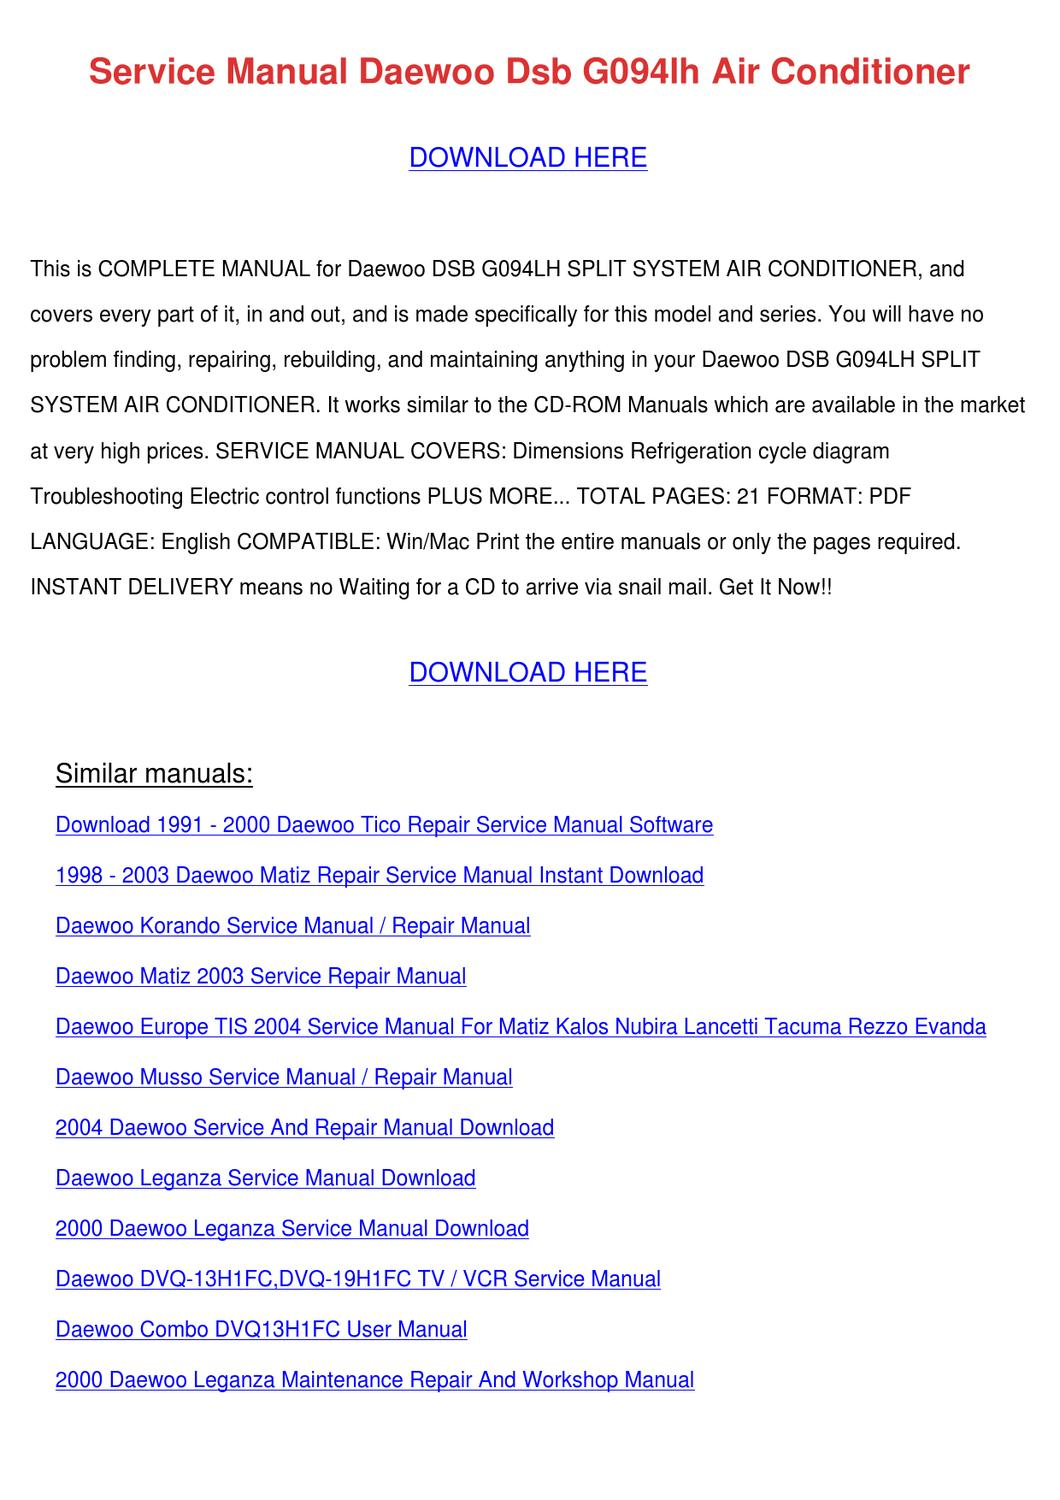 Daewoo Matiz Wiring Diagram Free Download Library 2003 Lanos Compartment Fuse Box Array Service Manual Dsb G094lh Air Conditio By Anastasiaward Issuu Rh Workshop